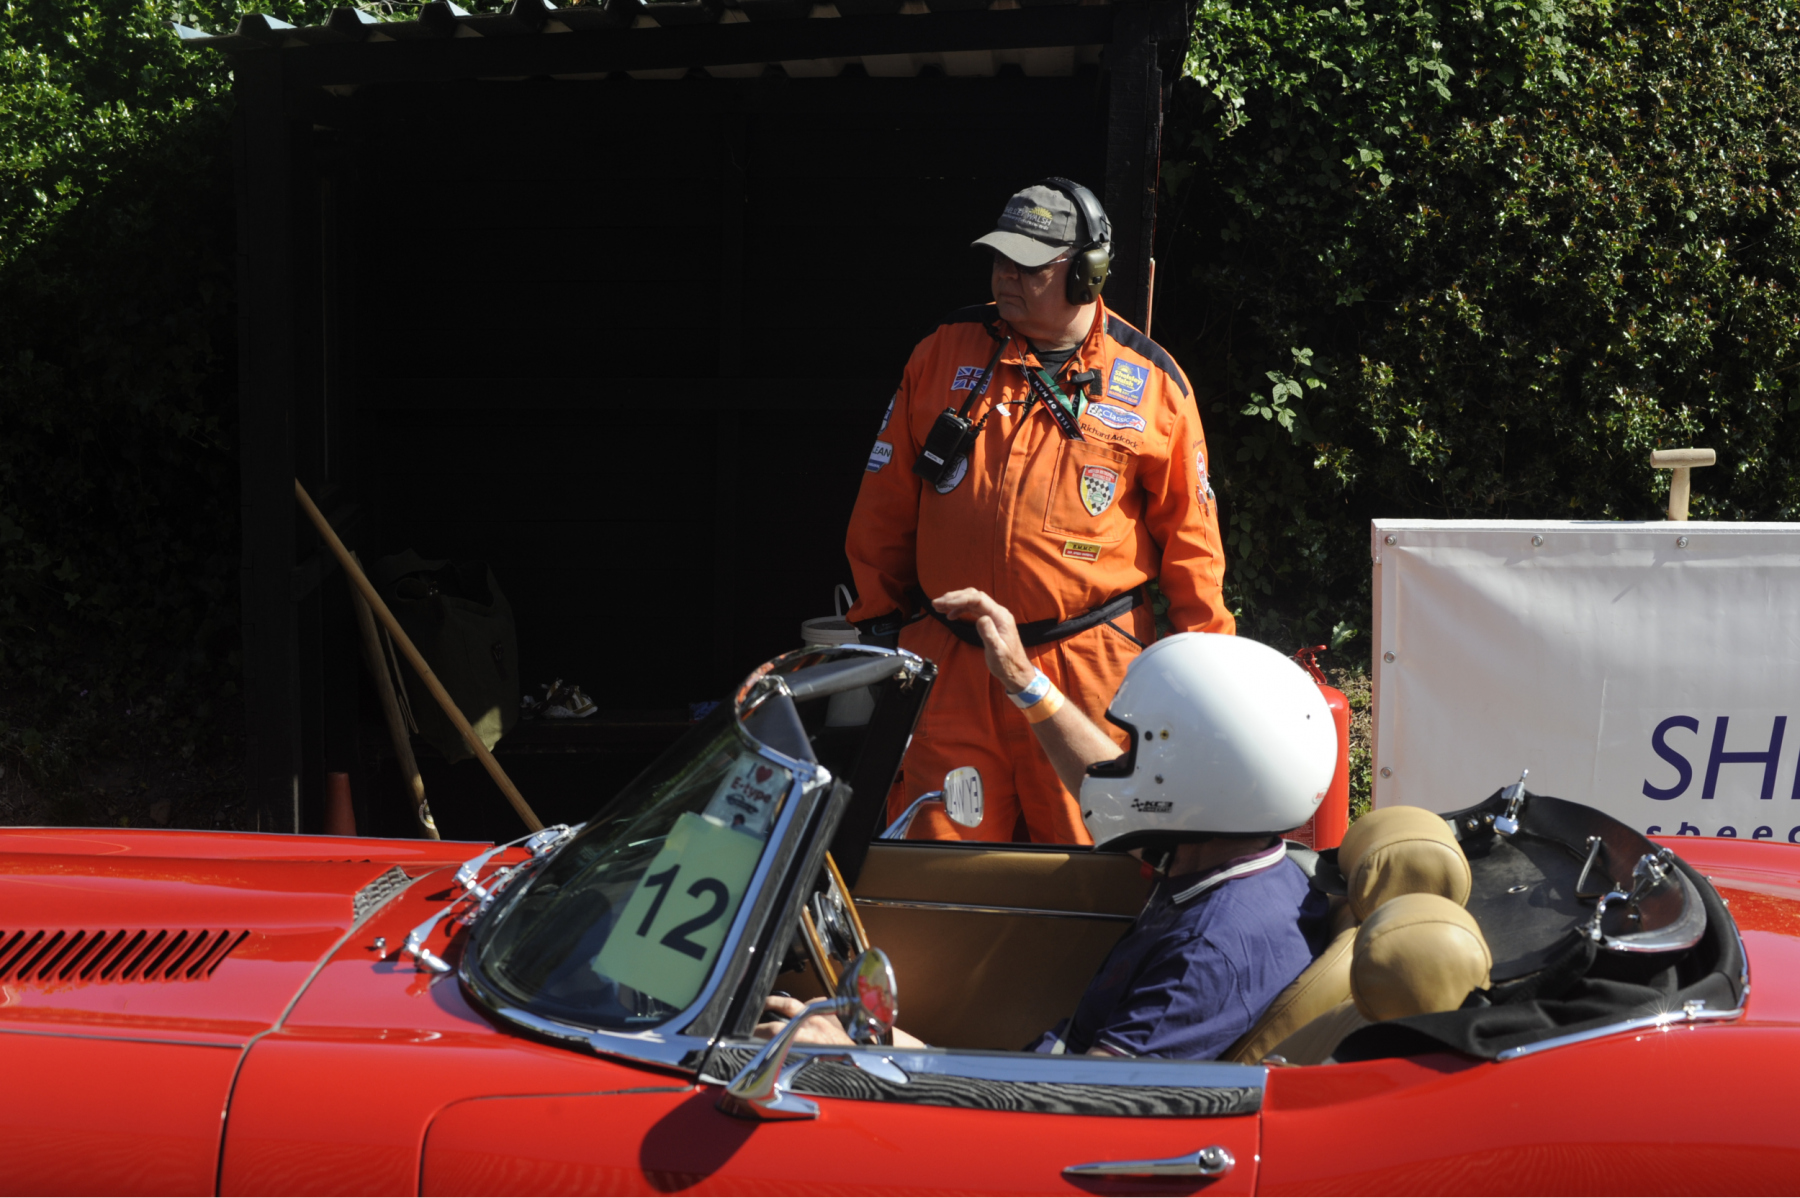 E-type-60-Saturday-photo-by-Abigail-Humphries-28